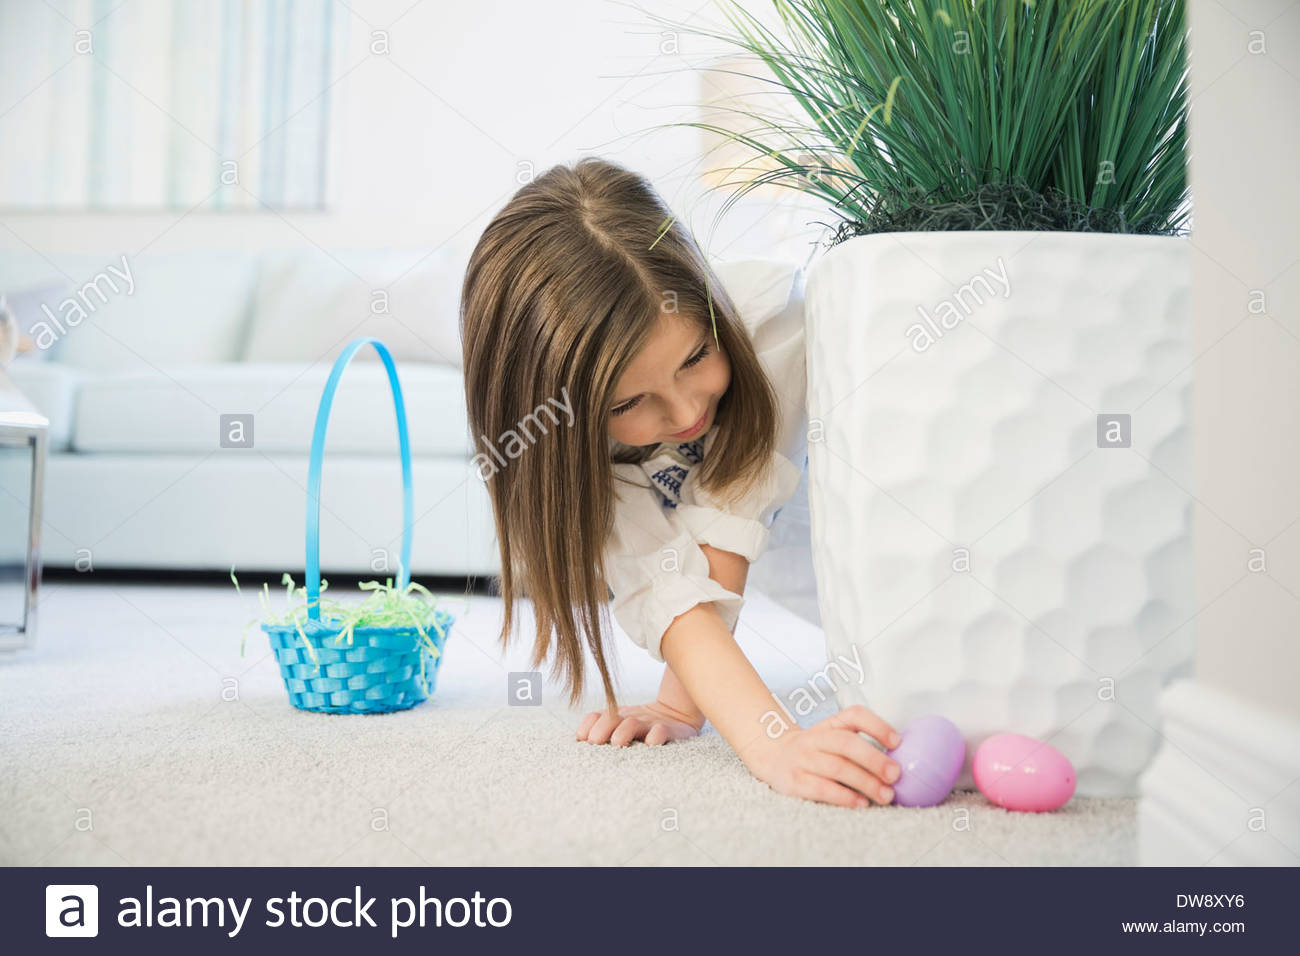 Girl collecting Easter eggs at home - Stock Image